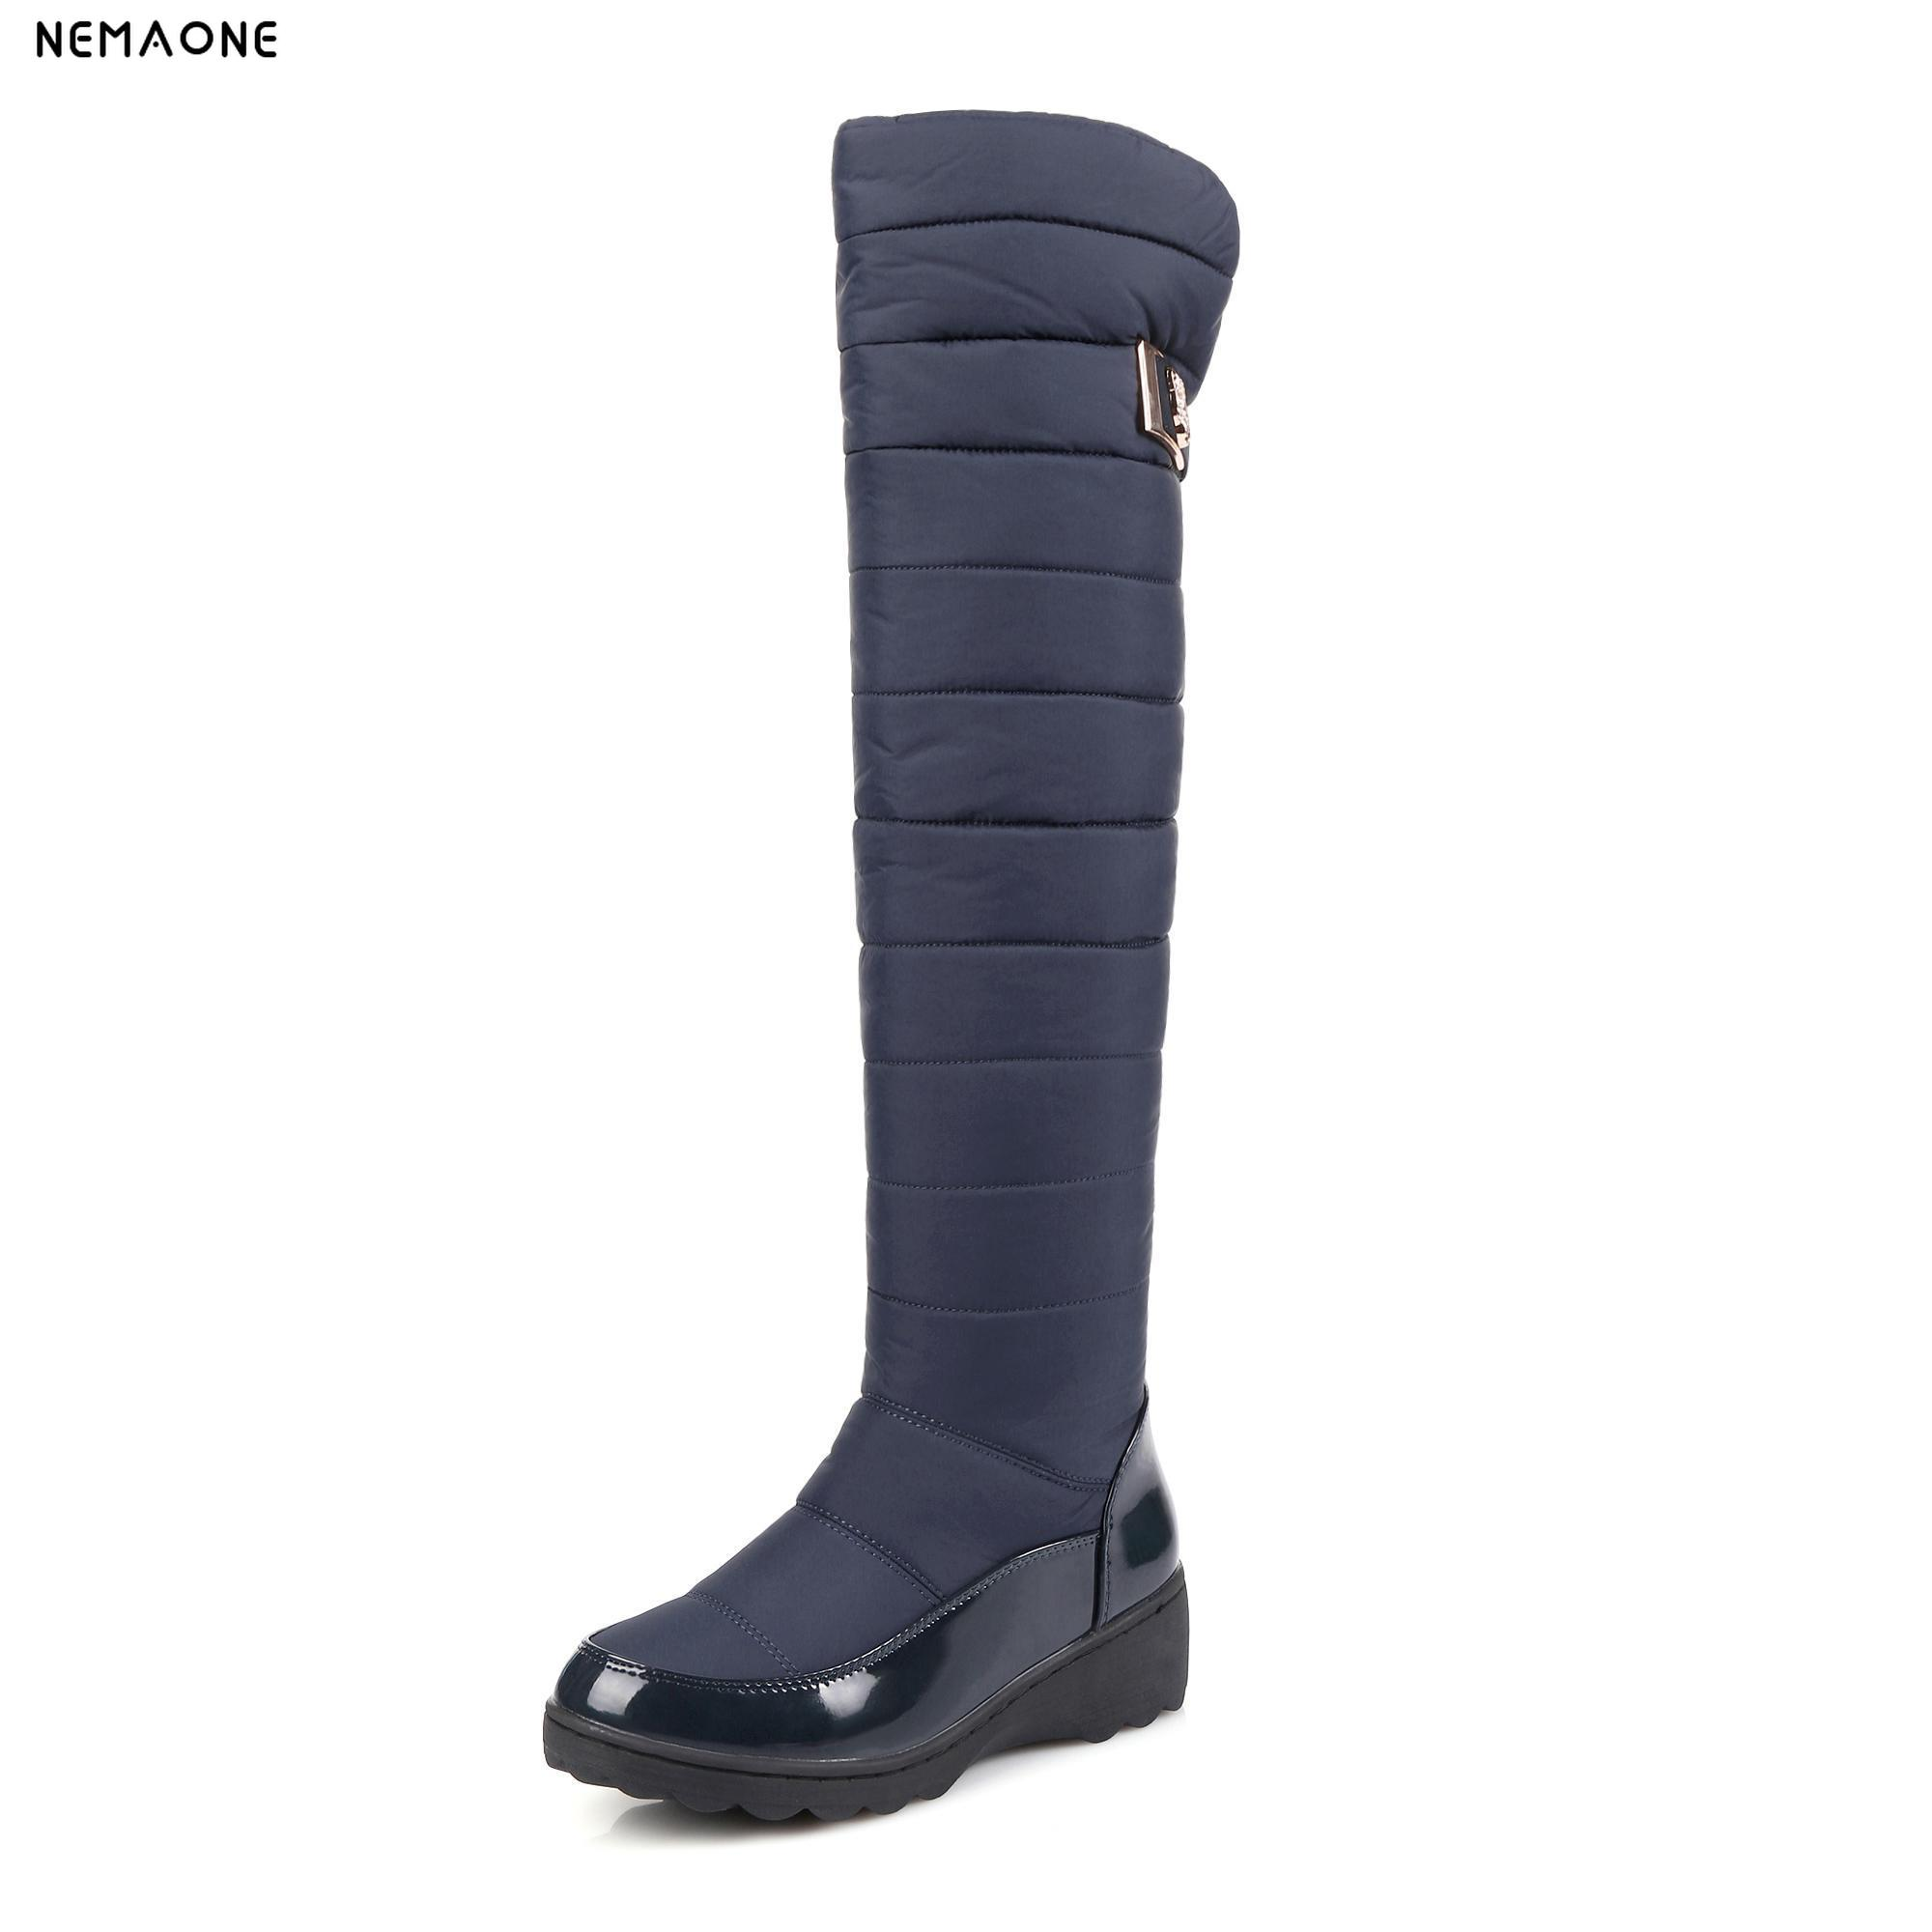 NEMAONE Plus size 34-44 Women Boots Winter Ladies Down Plush Snow Boots Fashion Wedge Low Heeled Knee High Warm Shoes For Woman консоль 195x135 70 бел